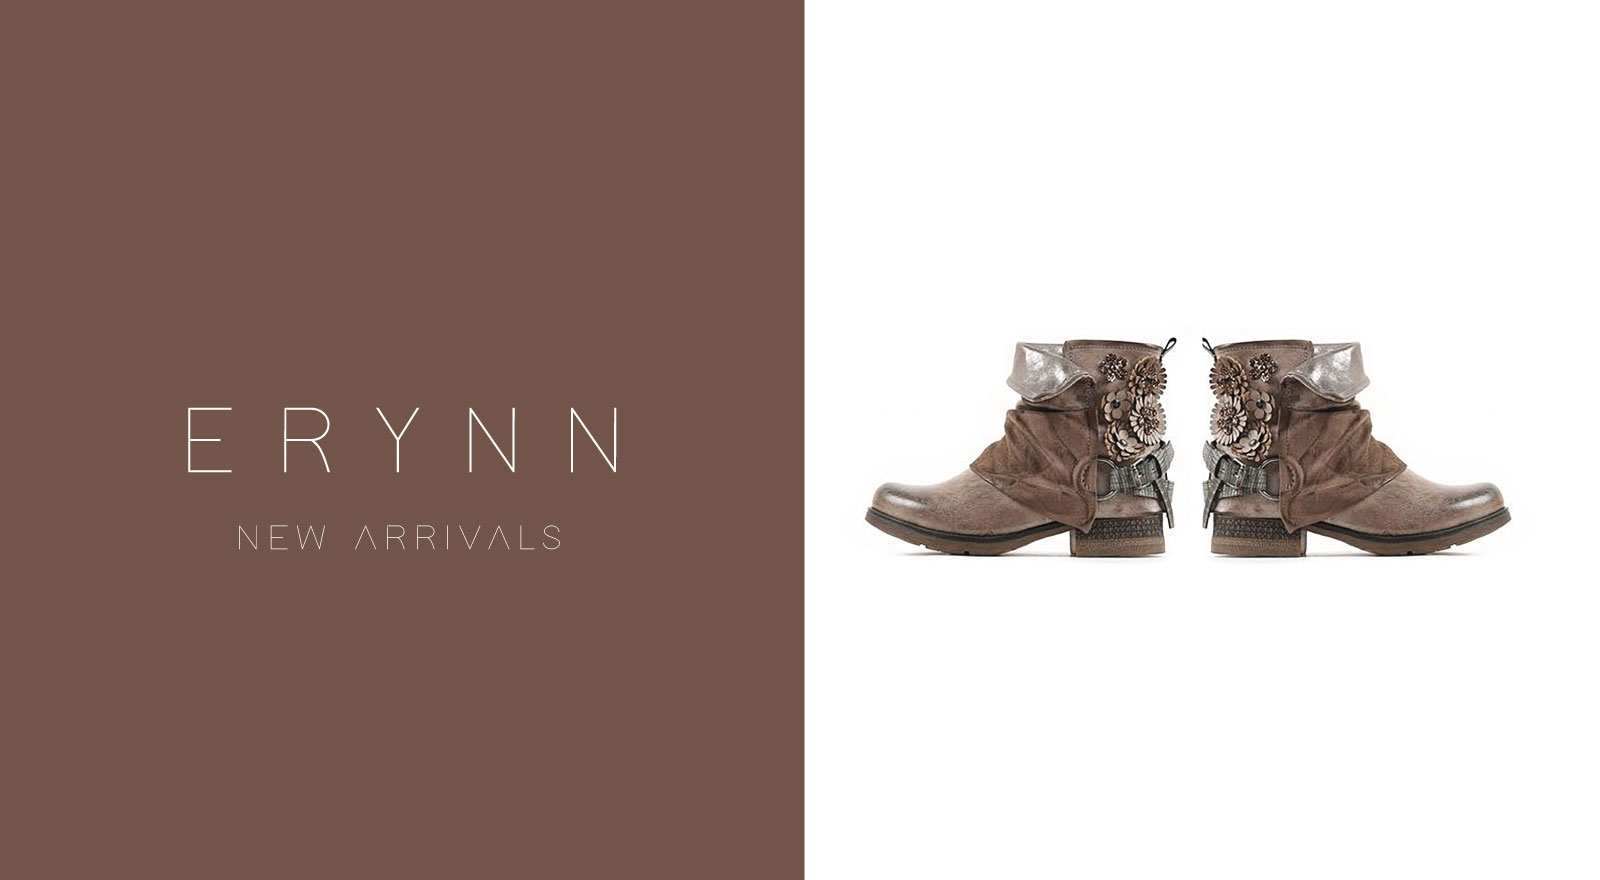 ERYNN Shoes New Arrivals